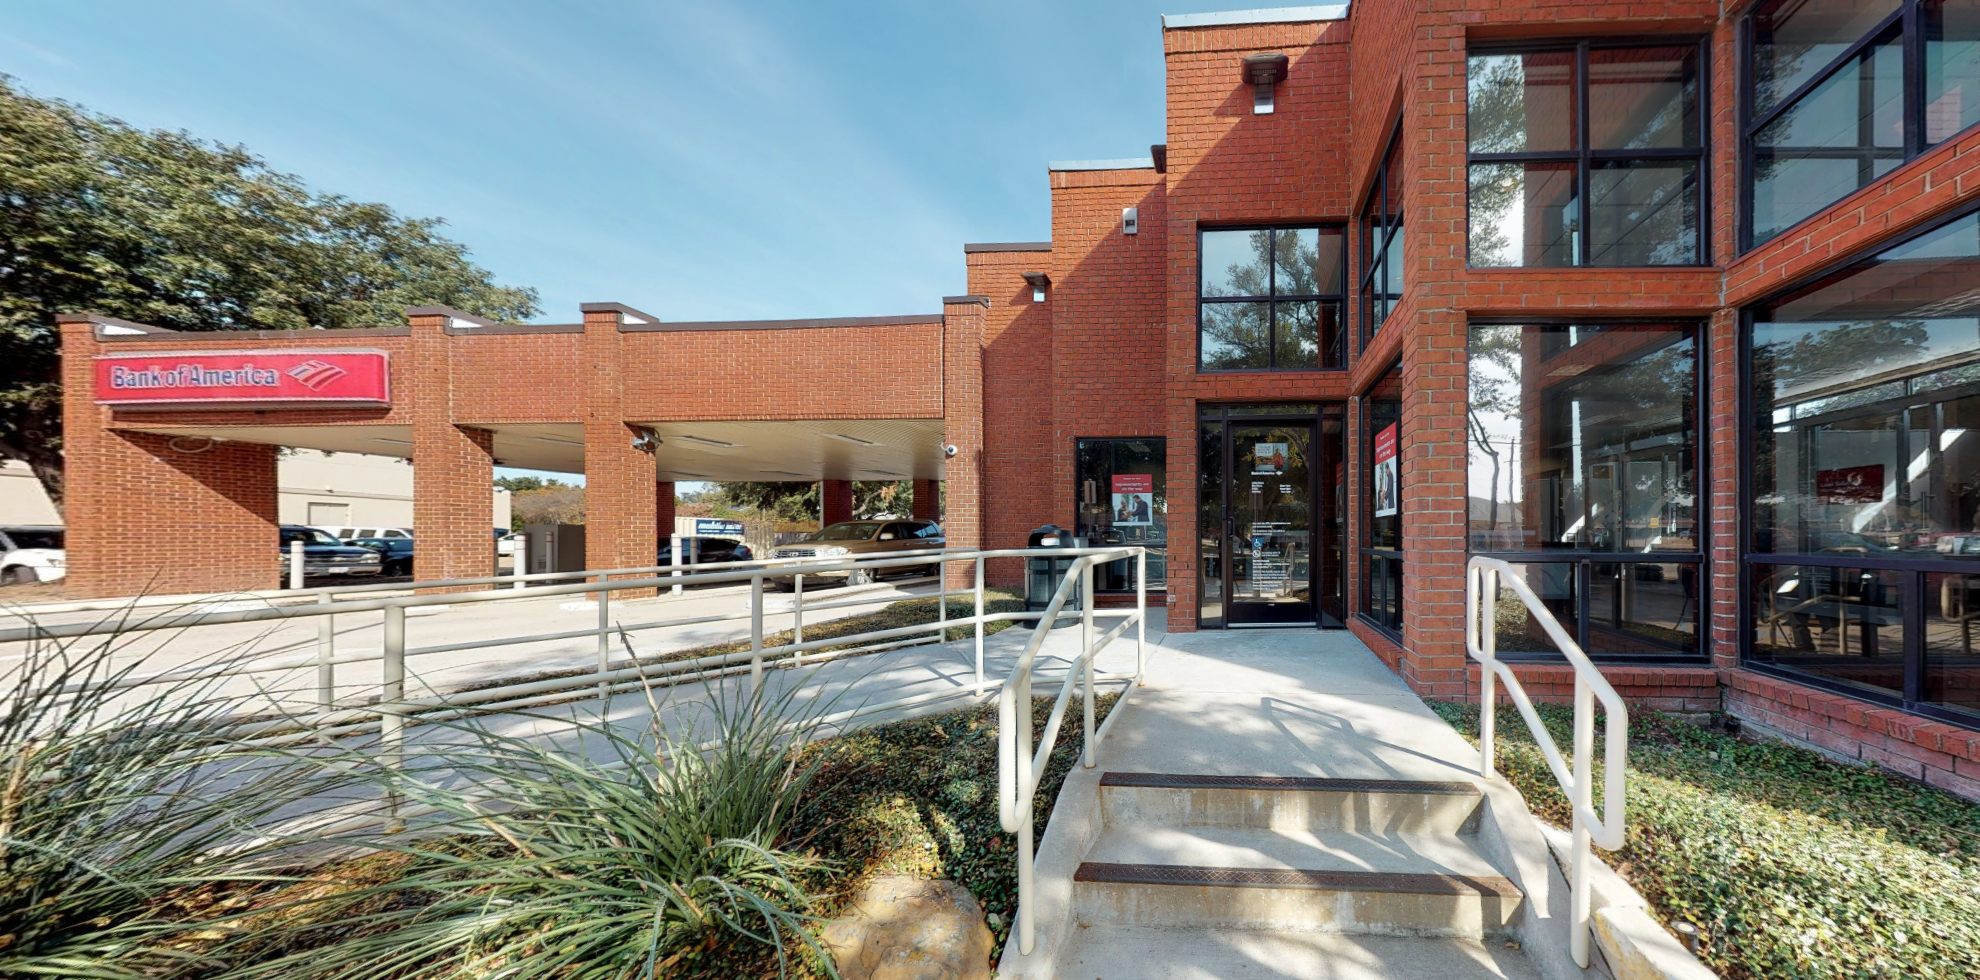 Bank of America financial center with drive-thru ATM | 6085 Campbell Rd, Dallas, TX 75248